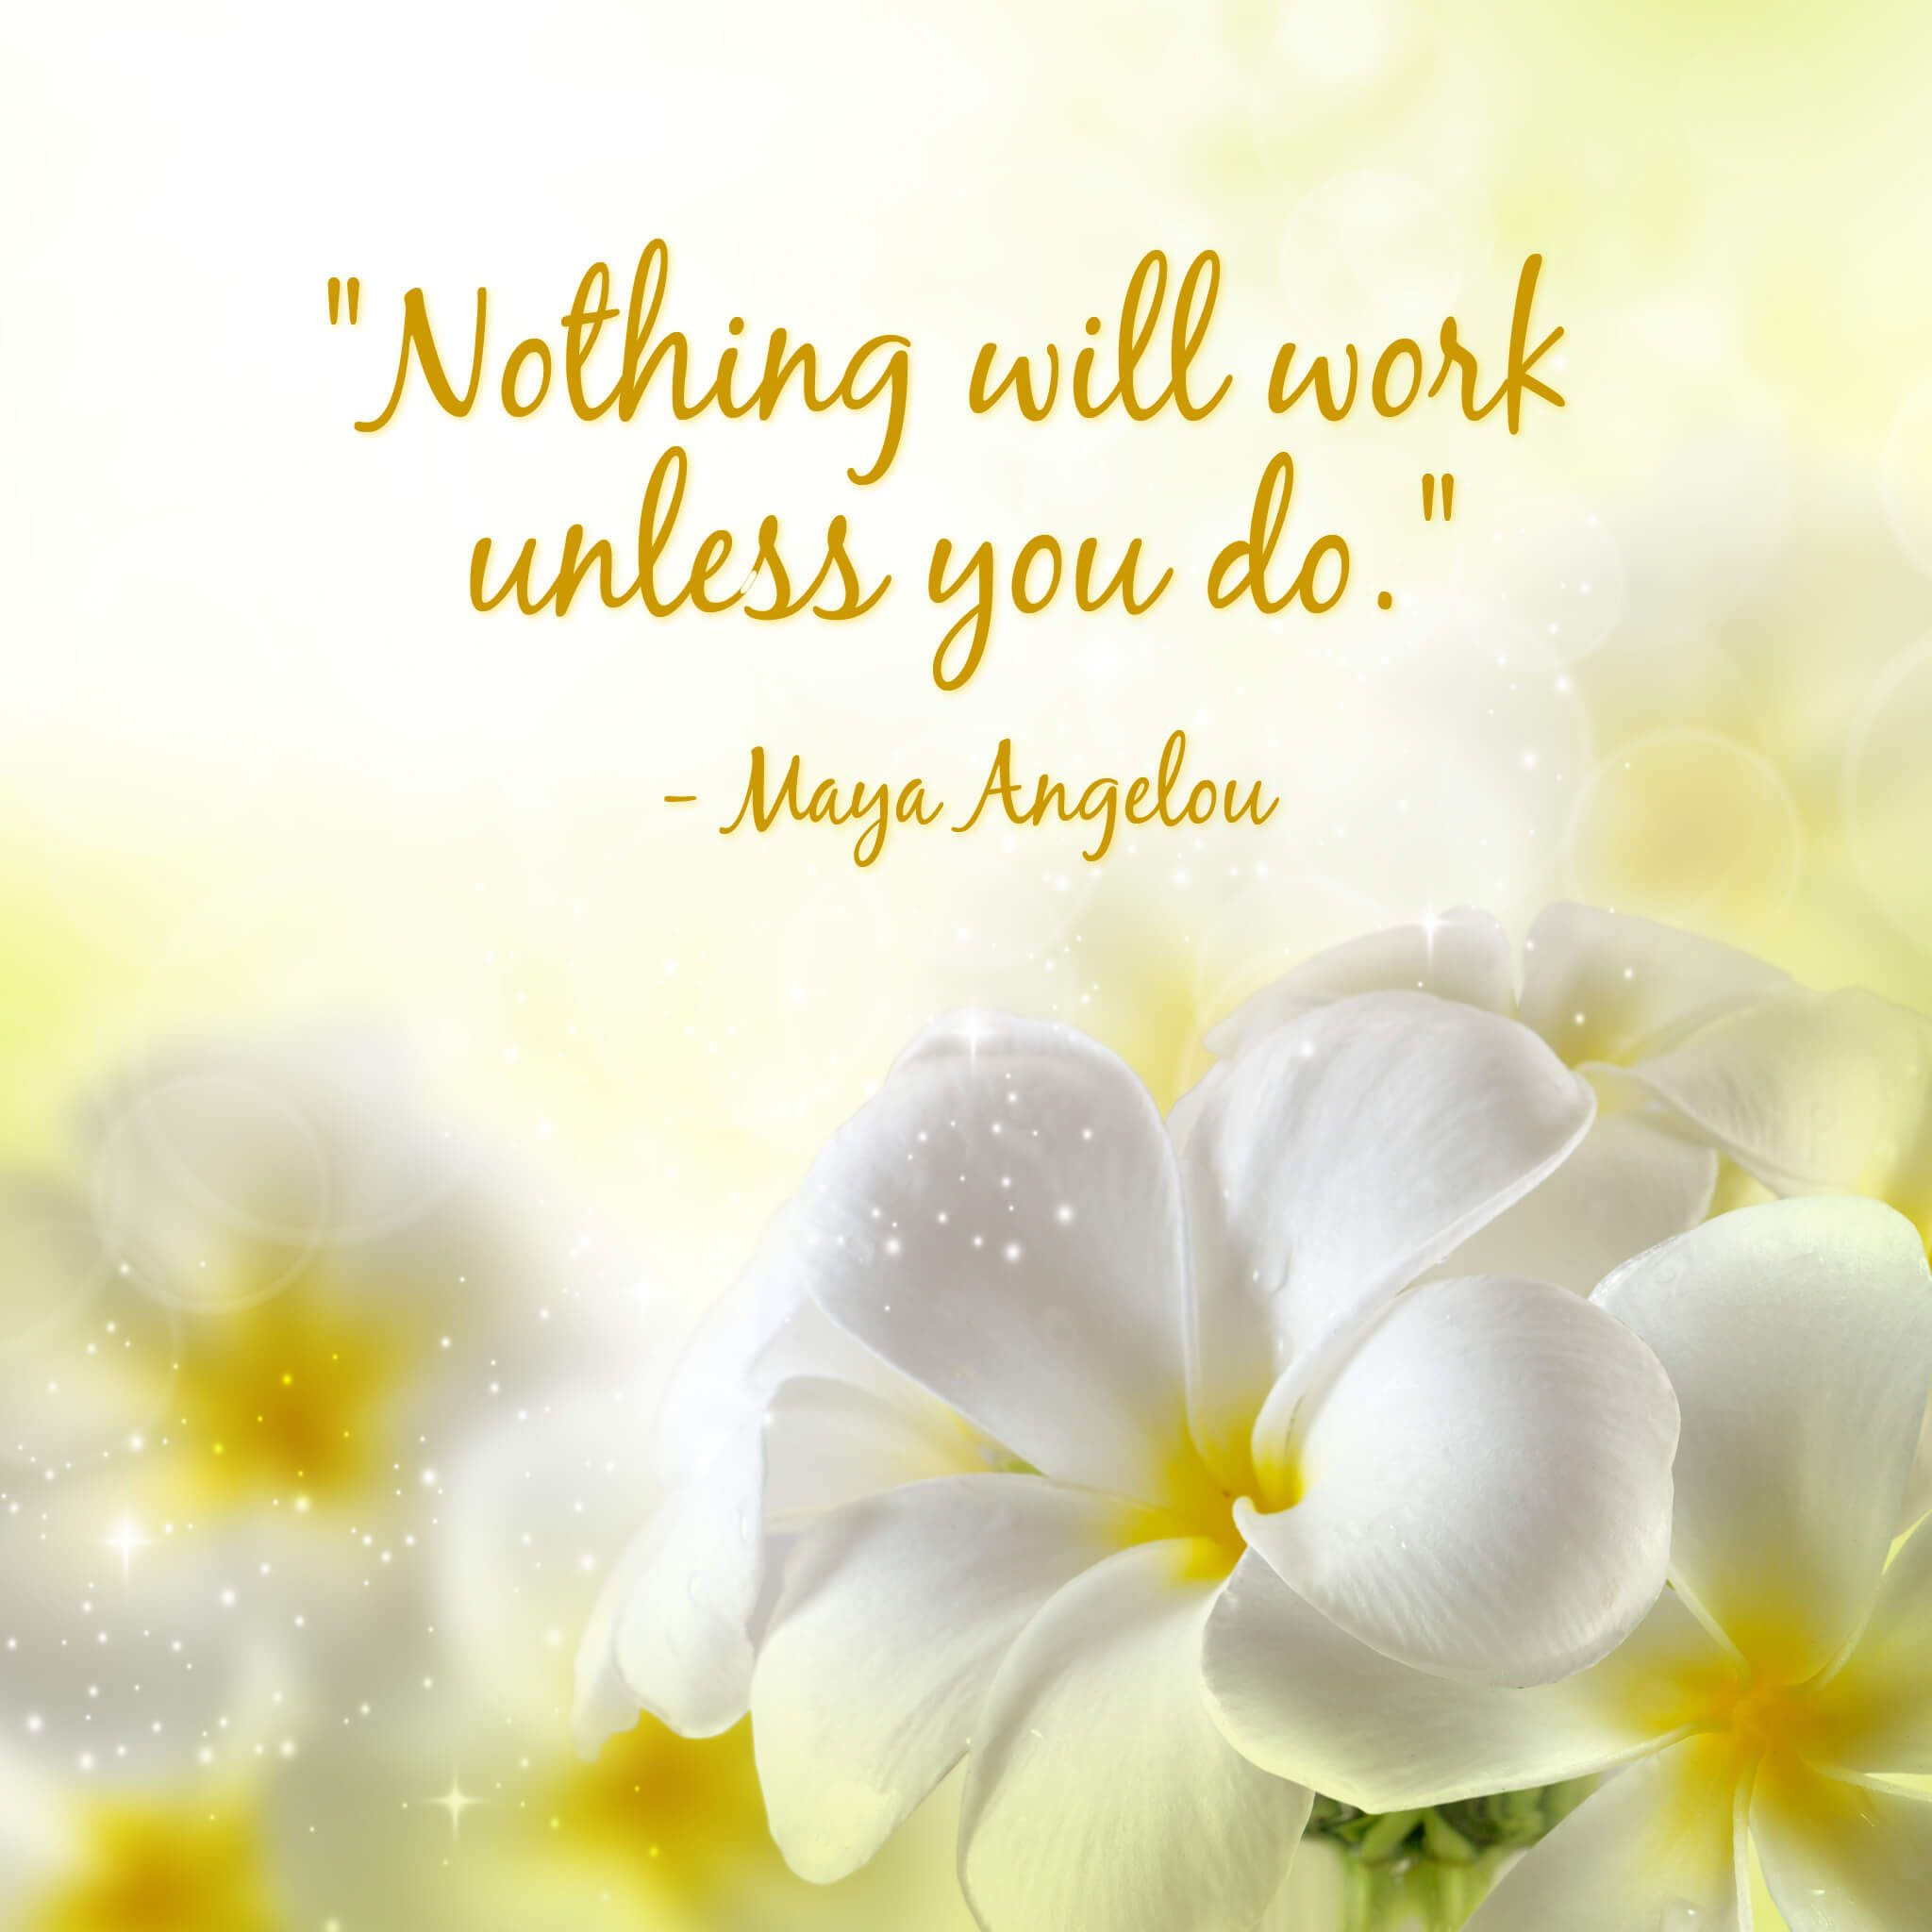 Nothing will work unless you do maya angelou quote maya angelou quote kristyandbryce Images